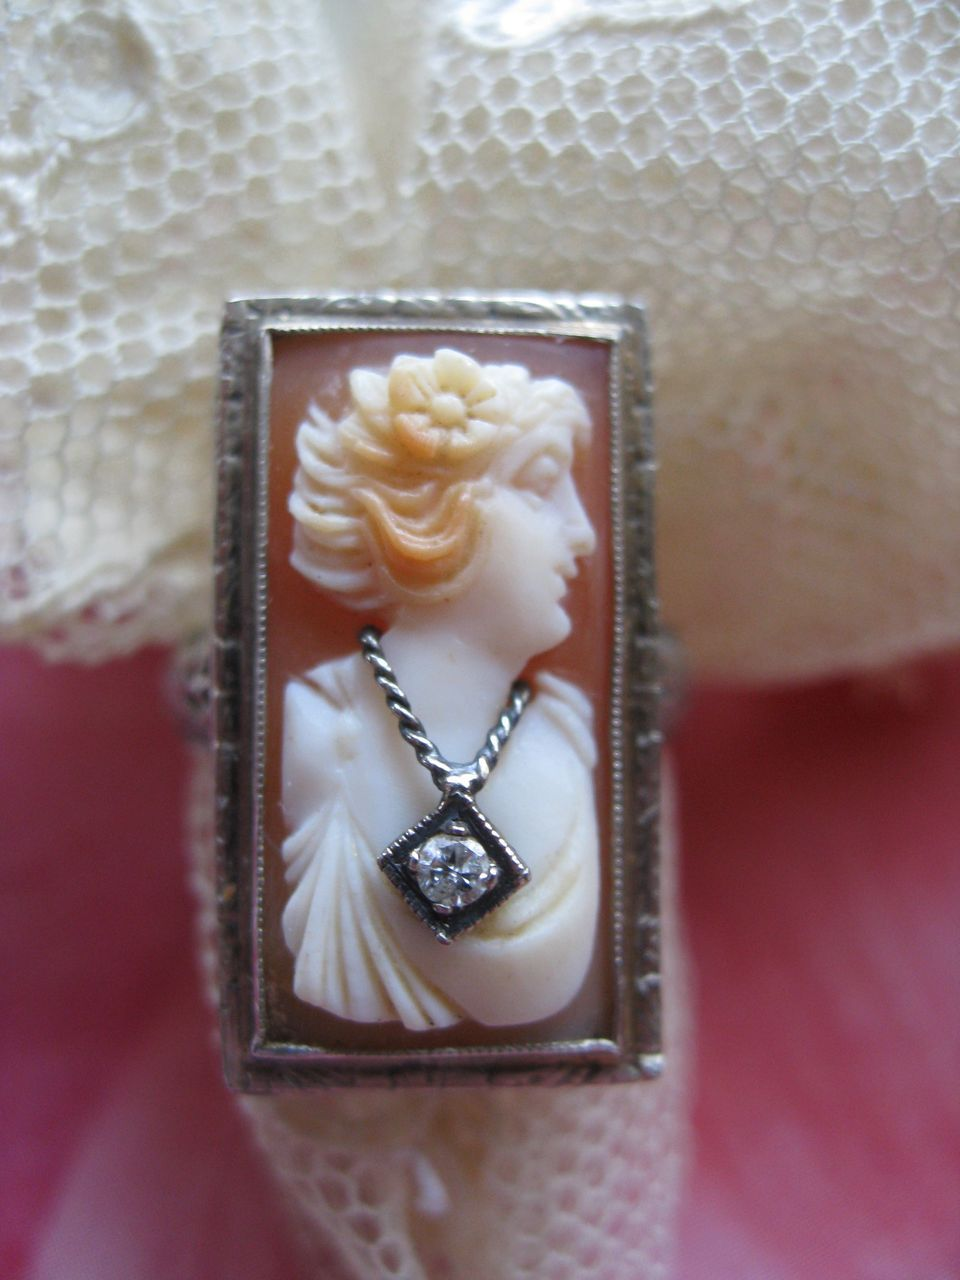 14K White Gold Cameo Habille Ring    Circa 1930